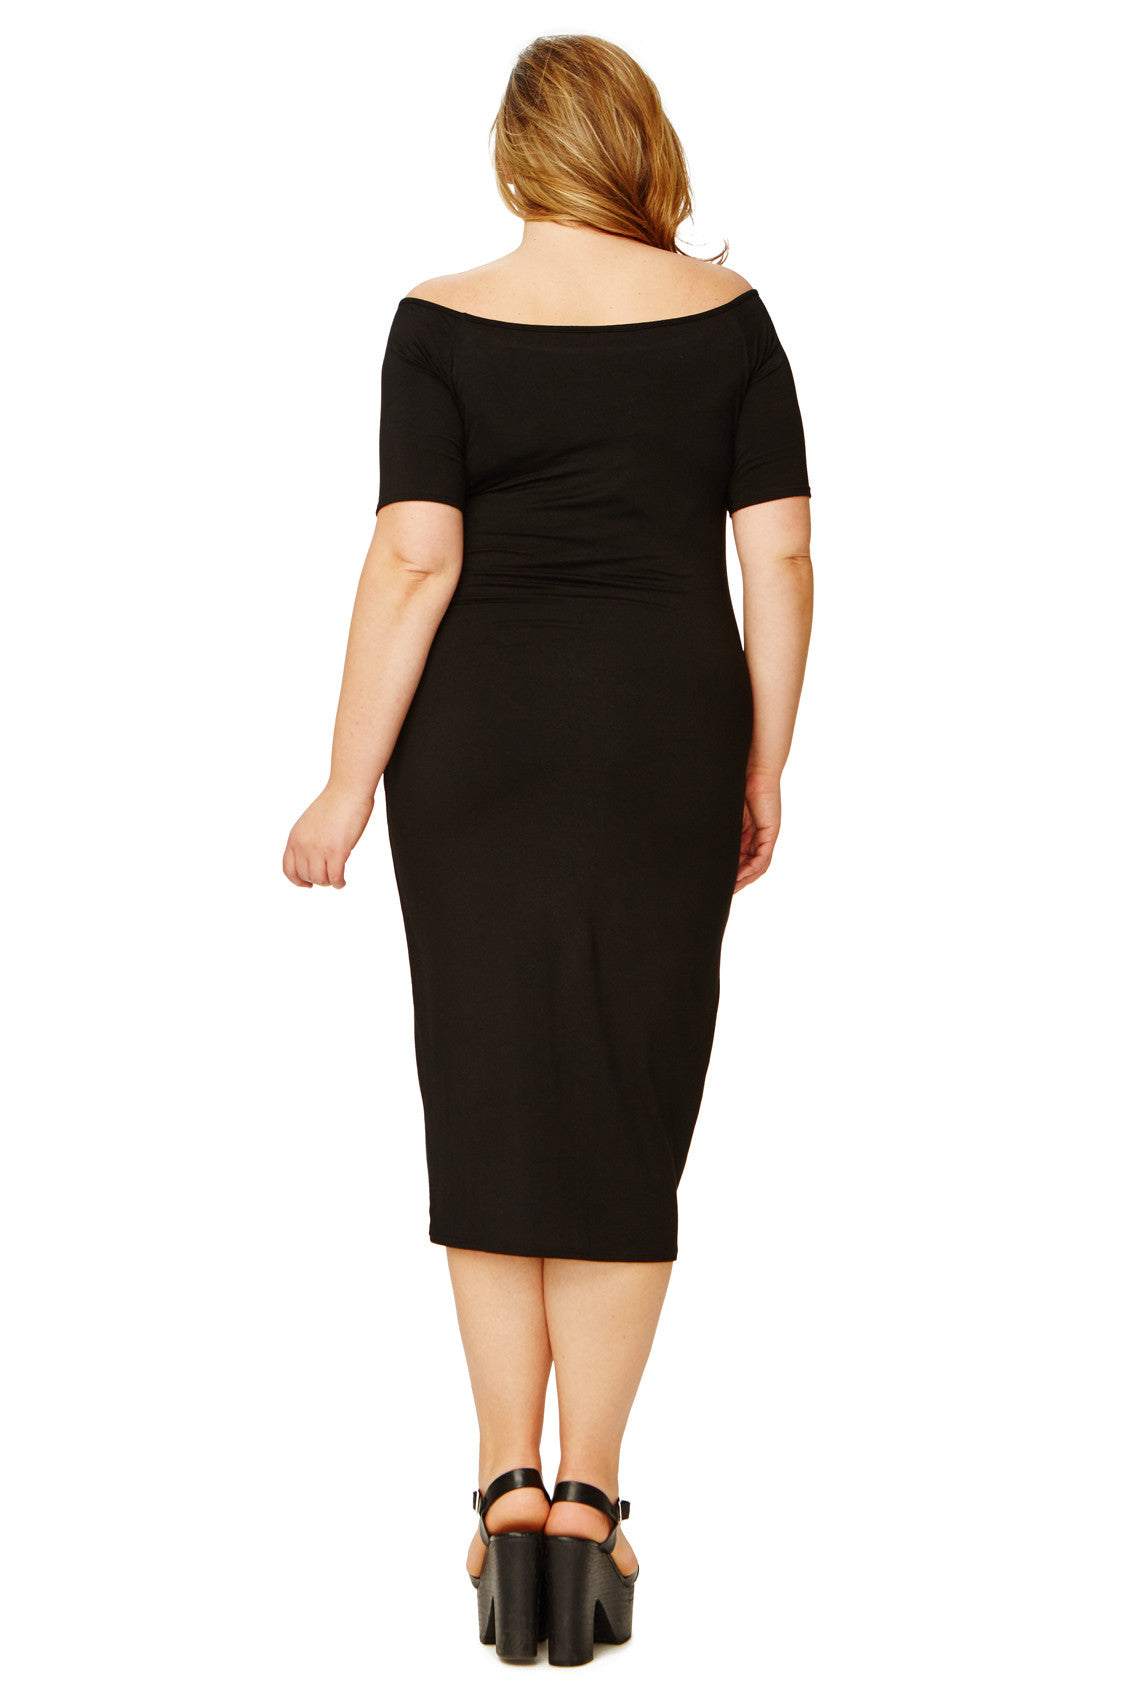 MID-LENGTH JAGGER DRESS WL - BLACK